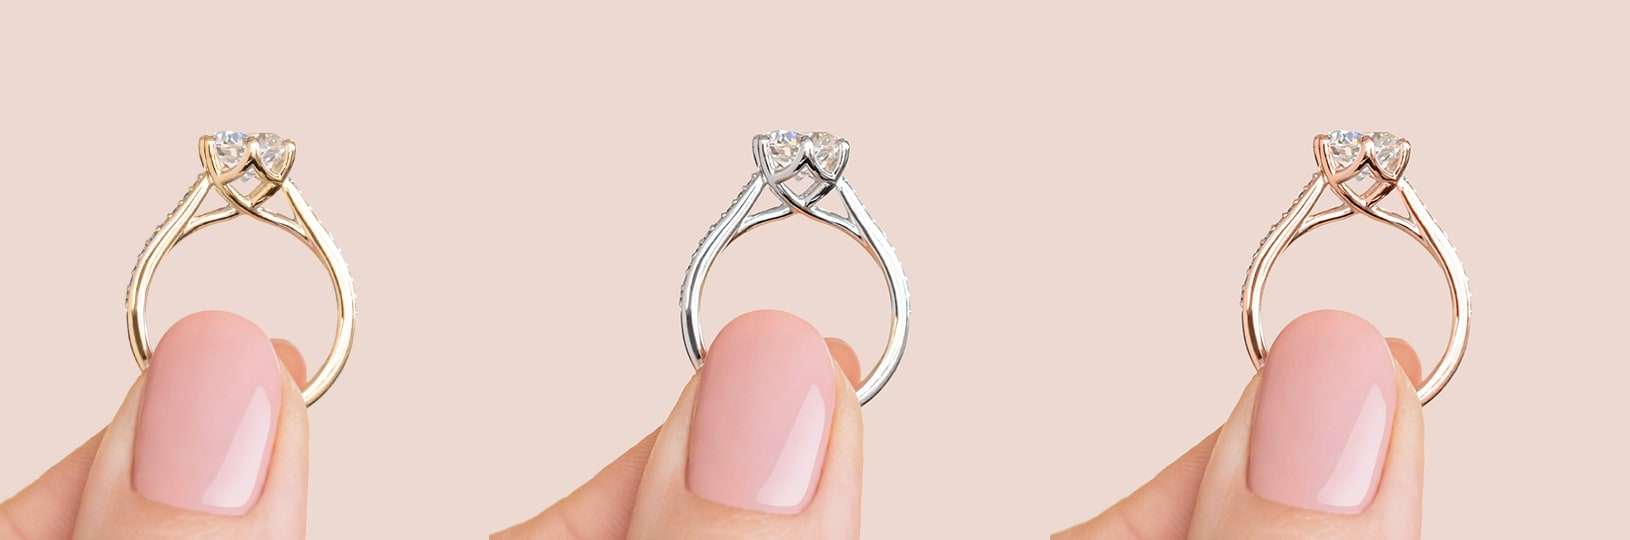 Different engagement ring metal types